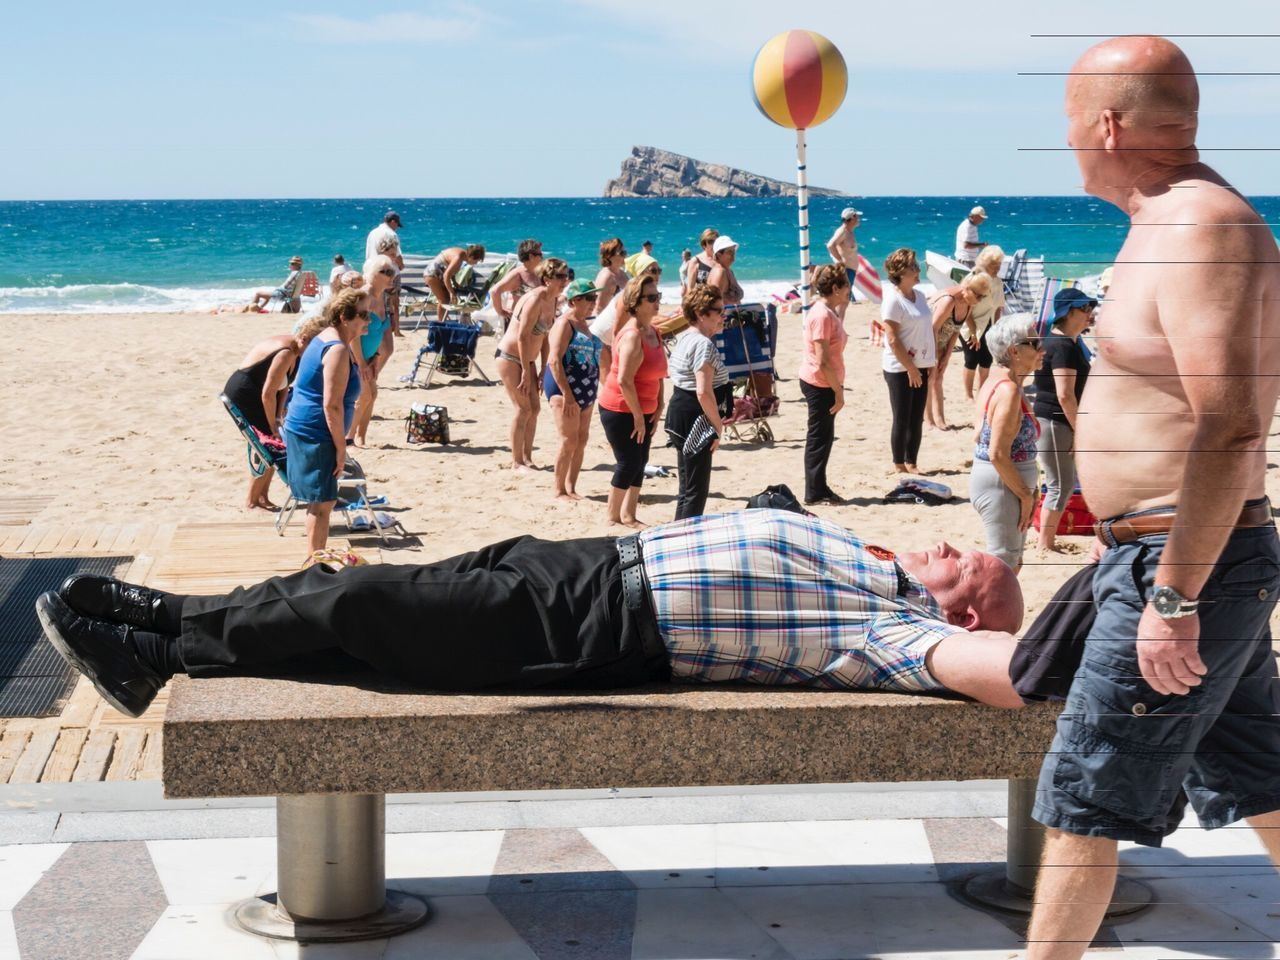 Who needs exercise Hanging Out Relaxing Enjoying Life Outdoors Old Age aerobics Exercise exercising Fitness fitness training Fit lazy Stretching strech Fun sleeping Sleep Laidback Beech sea Sand people Sunshine sunny Holiday And Relaxing holiday Athleisure